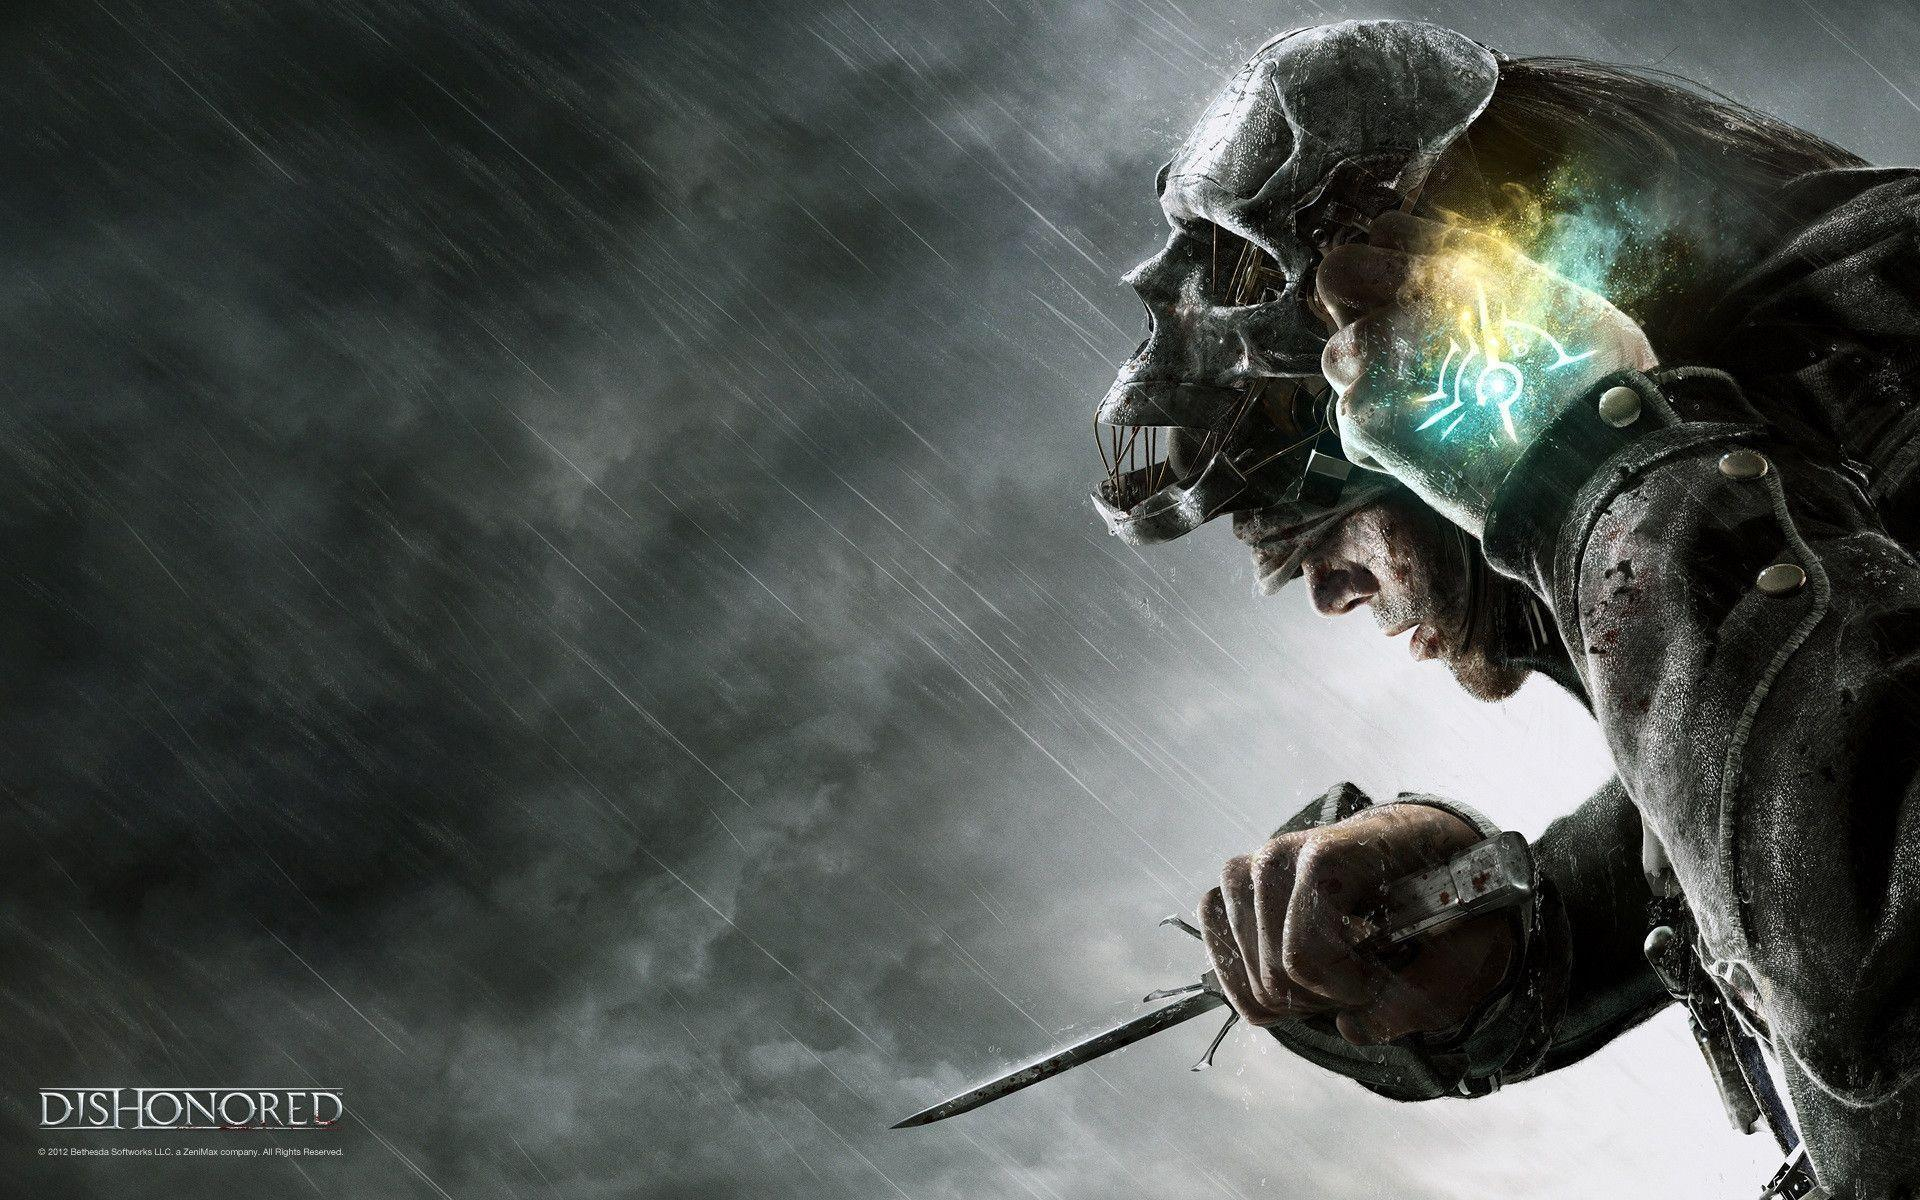 Dishonored Video Game HD Wallpapers - HD Wallpapers Inn